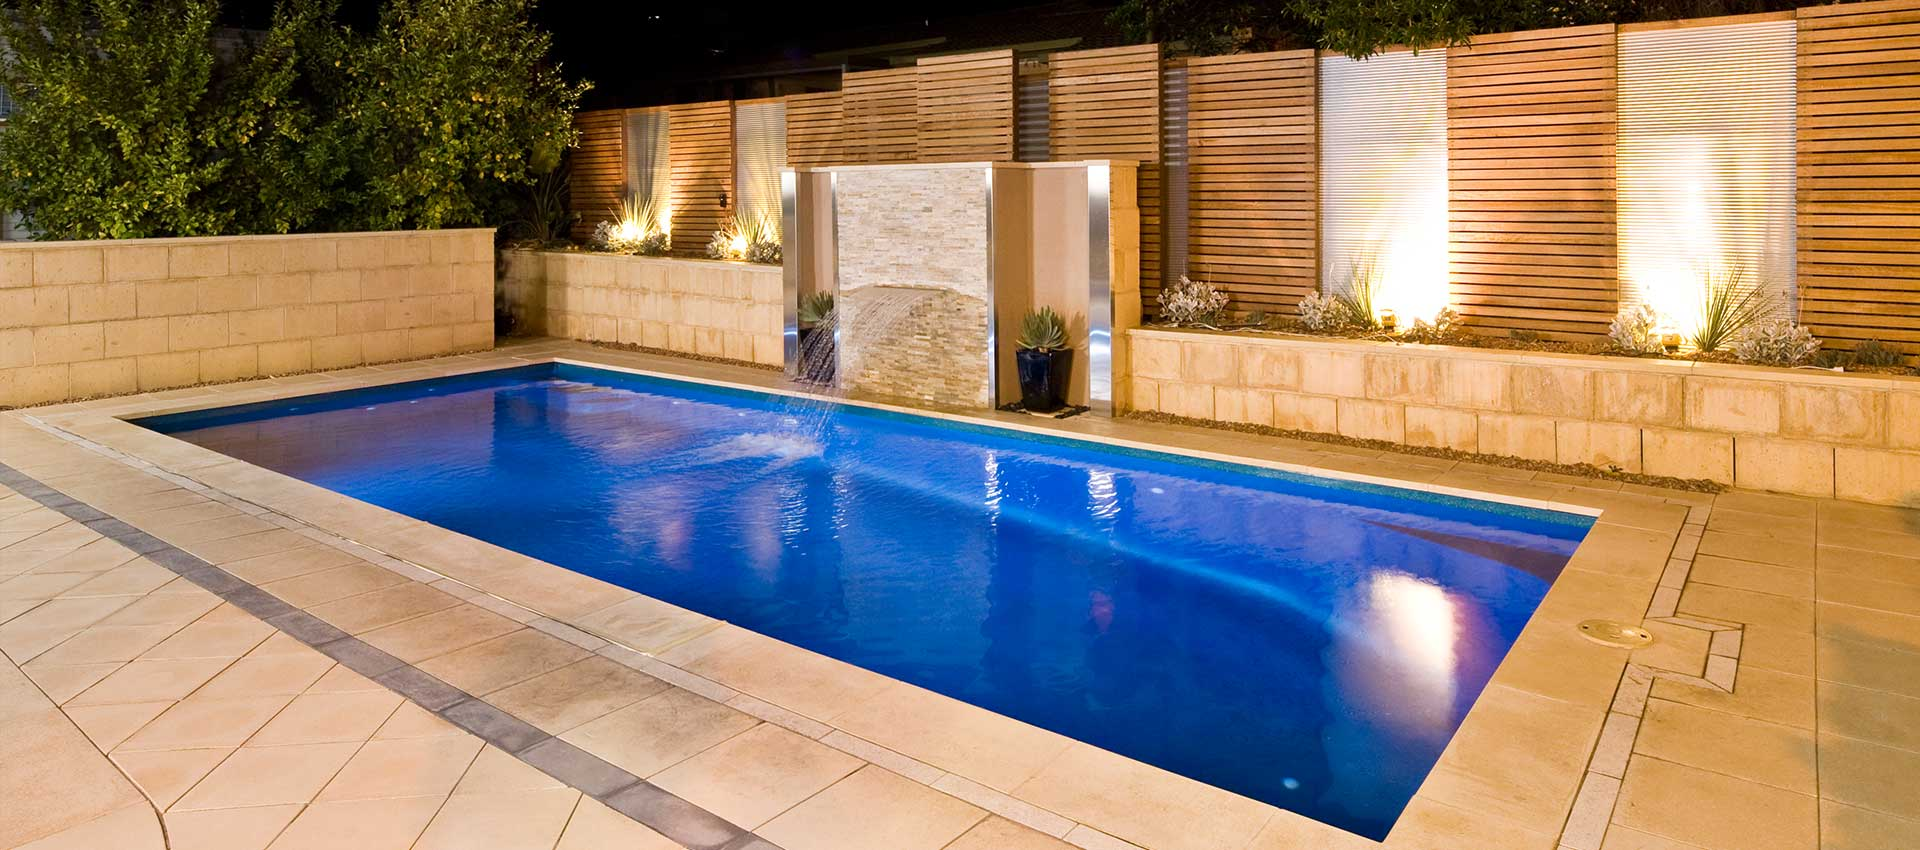 Pools Direct - Daintree Pool Range